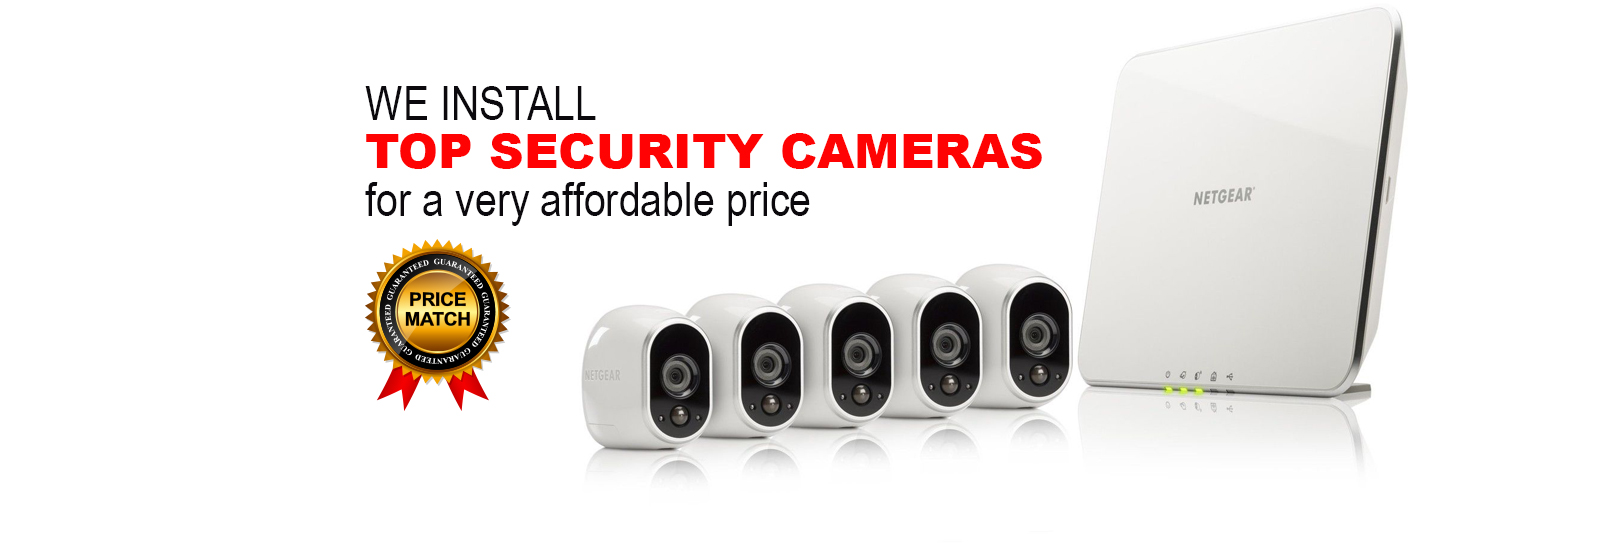 we-install-top-security-cameras-in-miami-fl